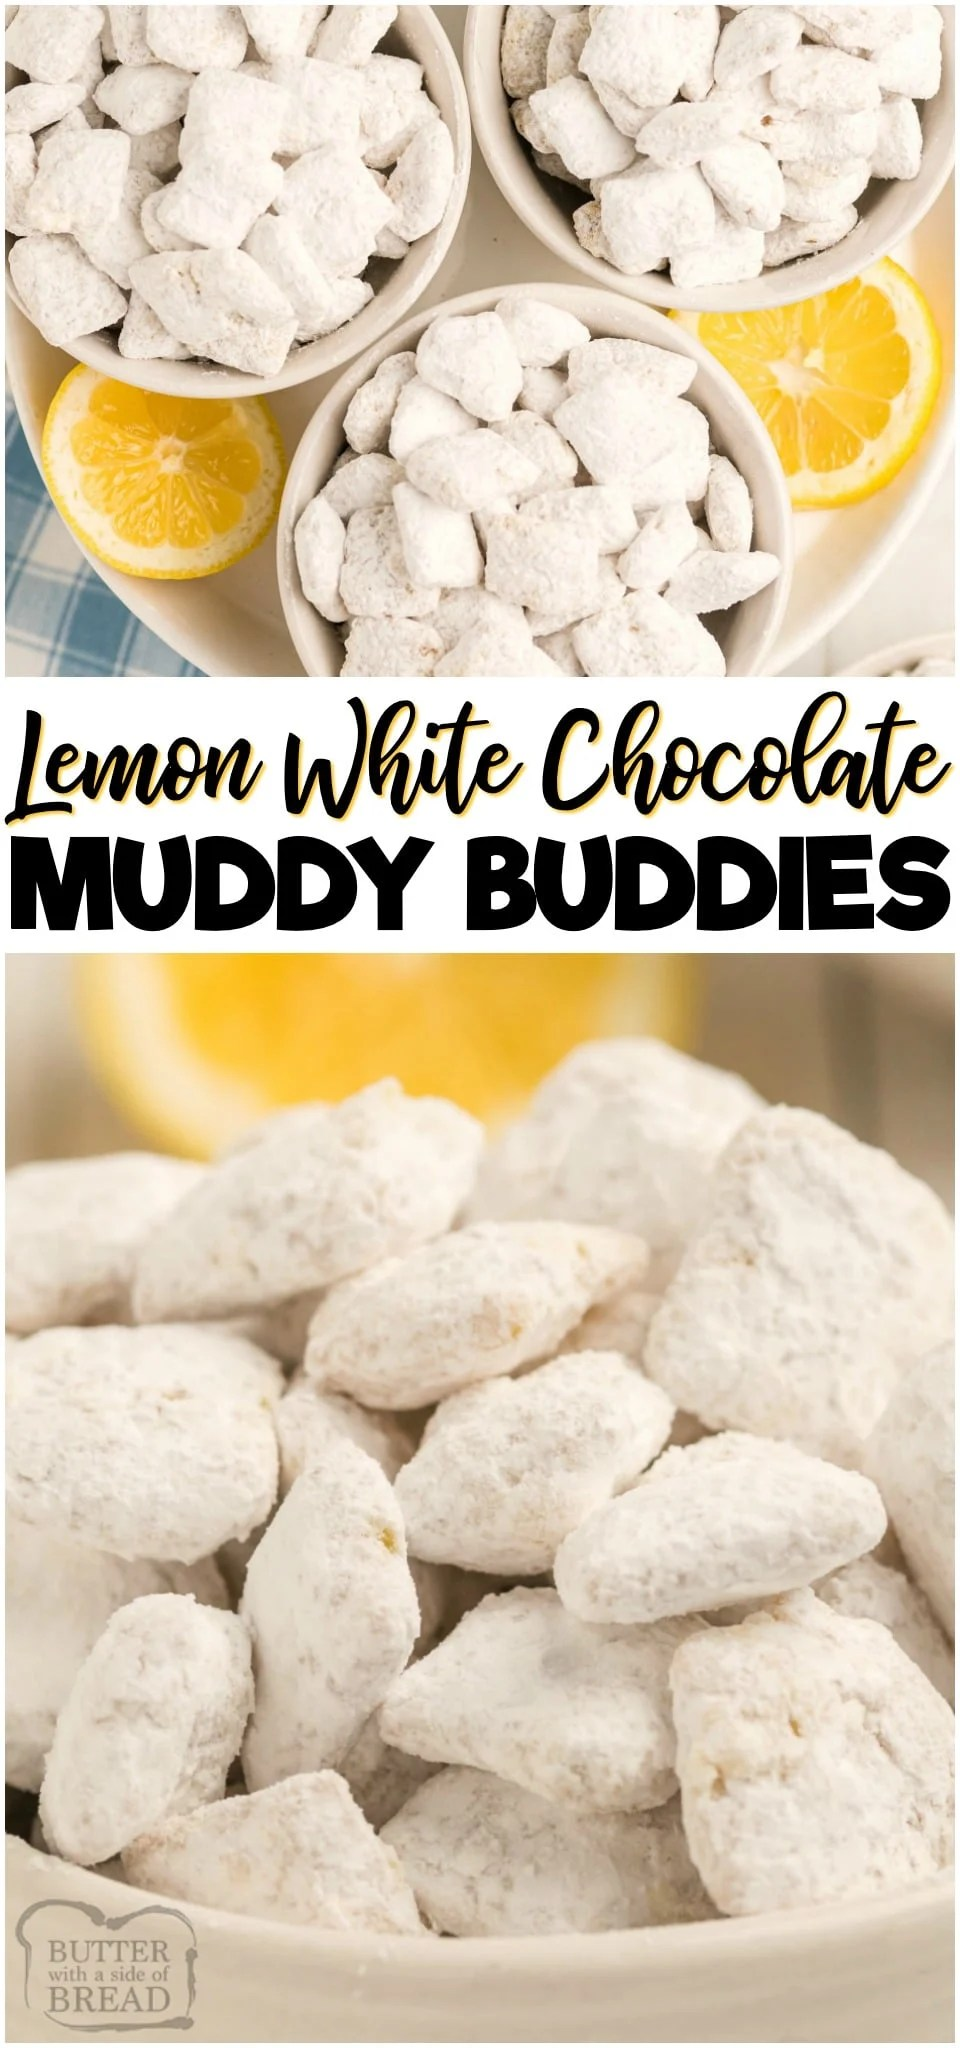 Lemon Muddy Buddy recipe made with lemon pudding mix, sweetened condensed milk, white chocolate and powdered sugar. These bite-sized lemon treats are a huge crowd pleaser!